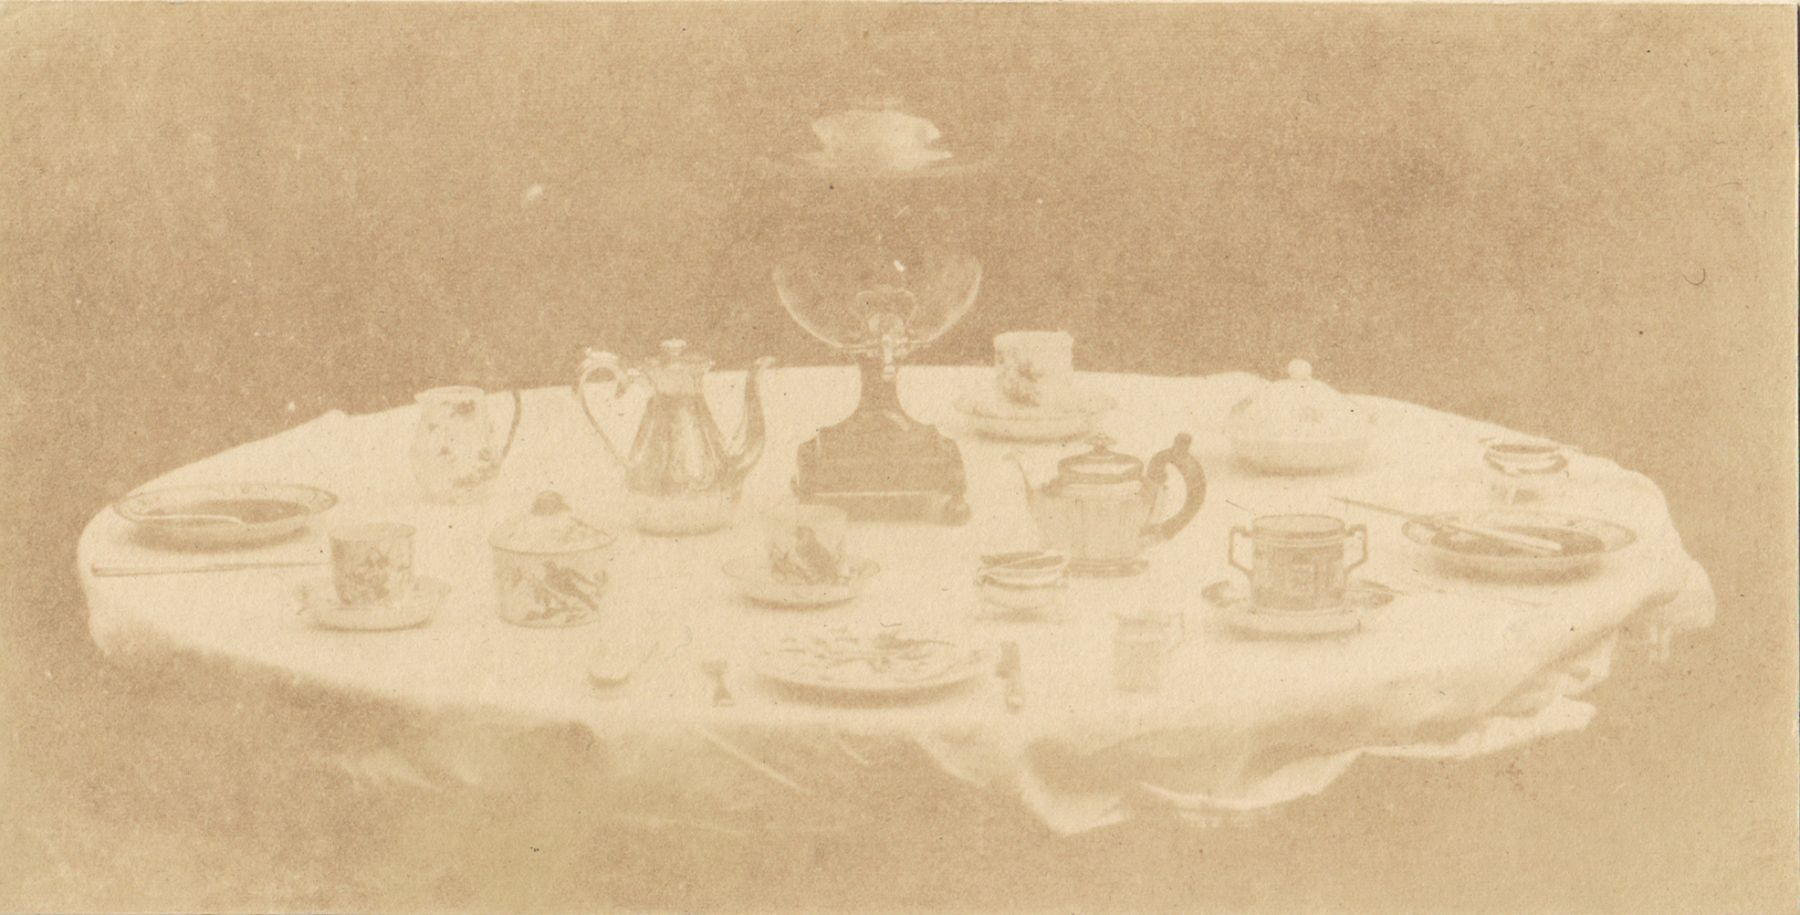 "William Henry Fox TALBOT (English, 1800-1877) Table set for tea, 1841-1842 Varnished salt print from a calotype negative 8.5 x 16.8 cm mounted on card, ruled  ""Patent Talbotype Photogenic Drawing"" label on mount verso"